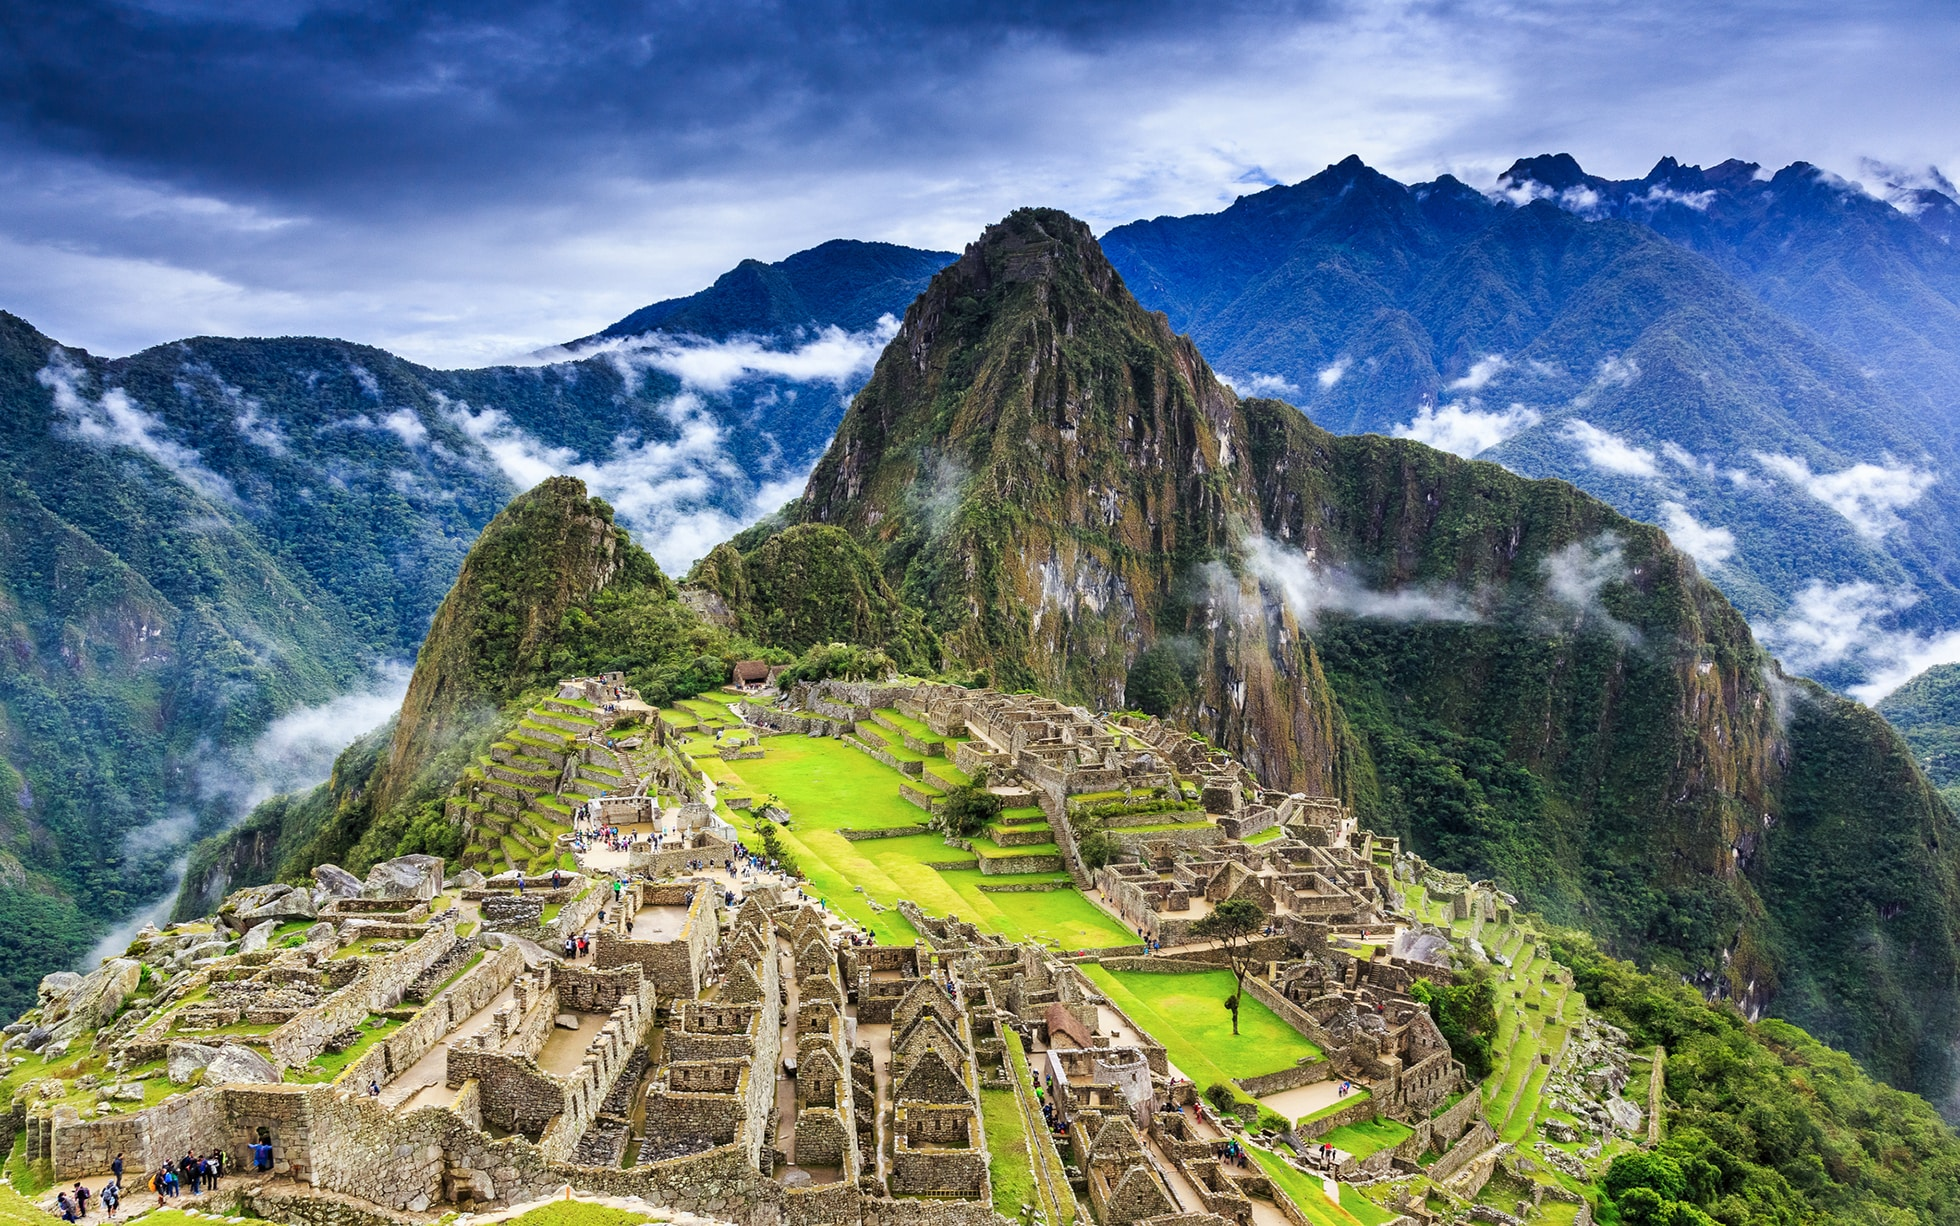 New Machu Picchu Airport Threatens Irreparable Damage To